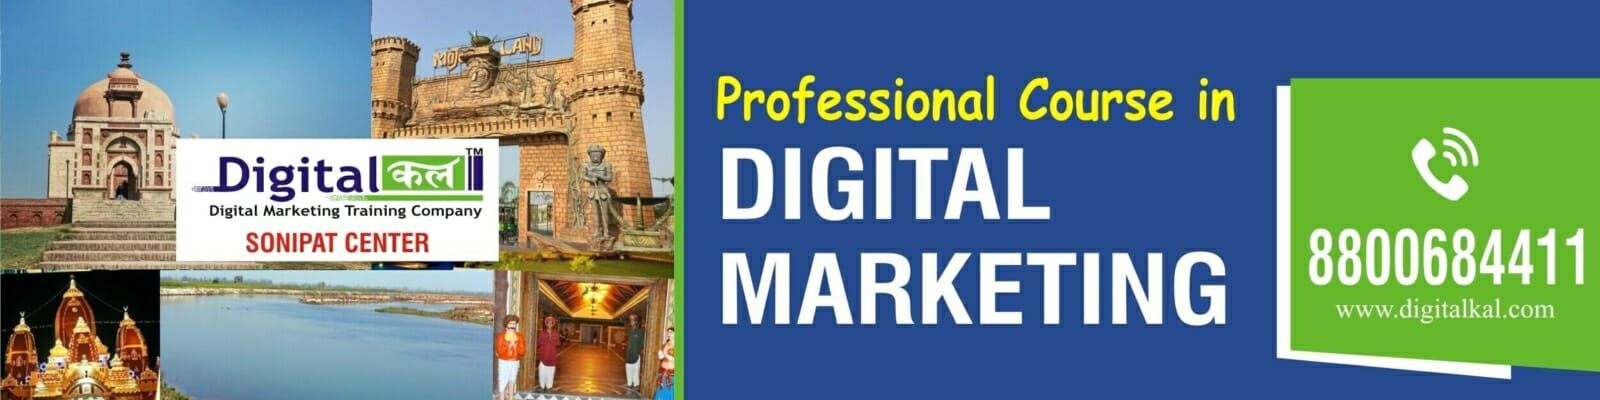 Digital Marketing Course Sonipat